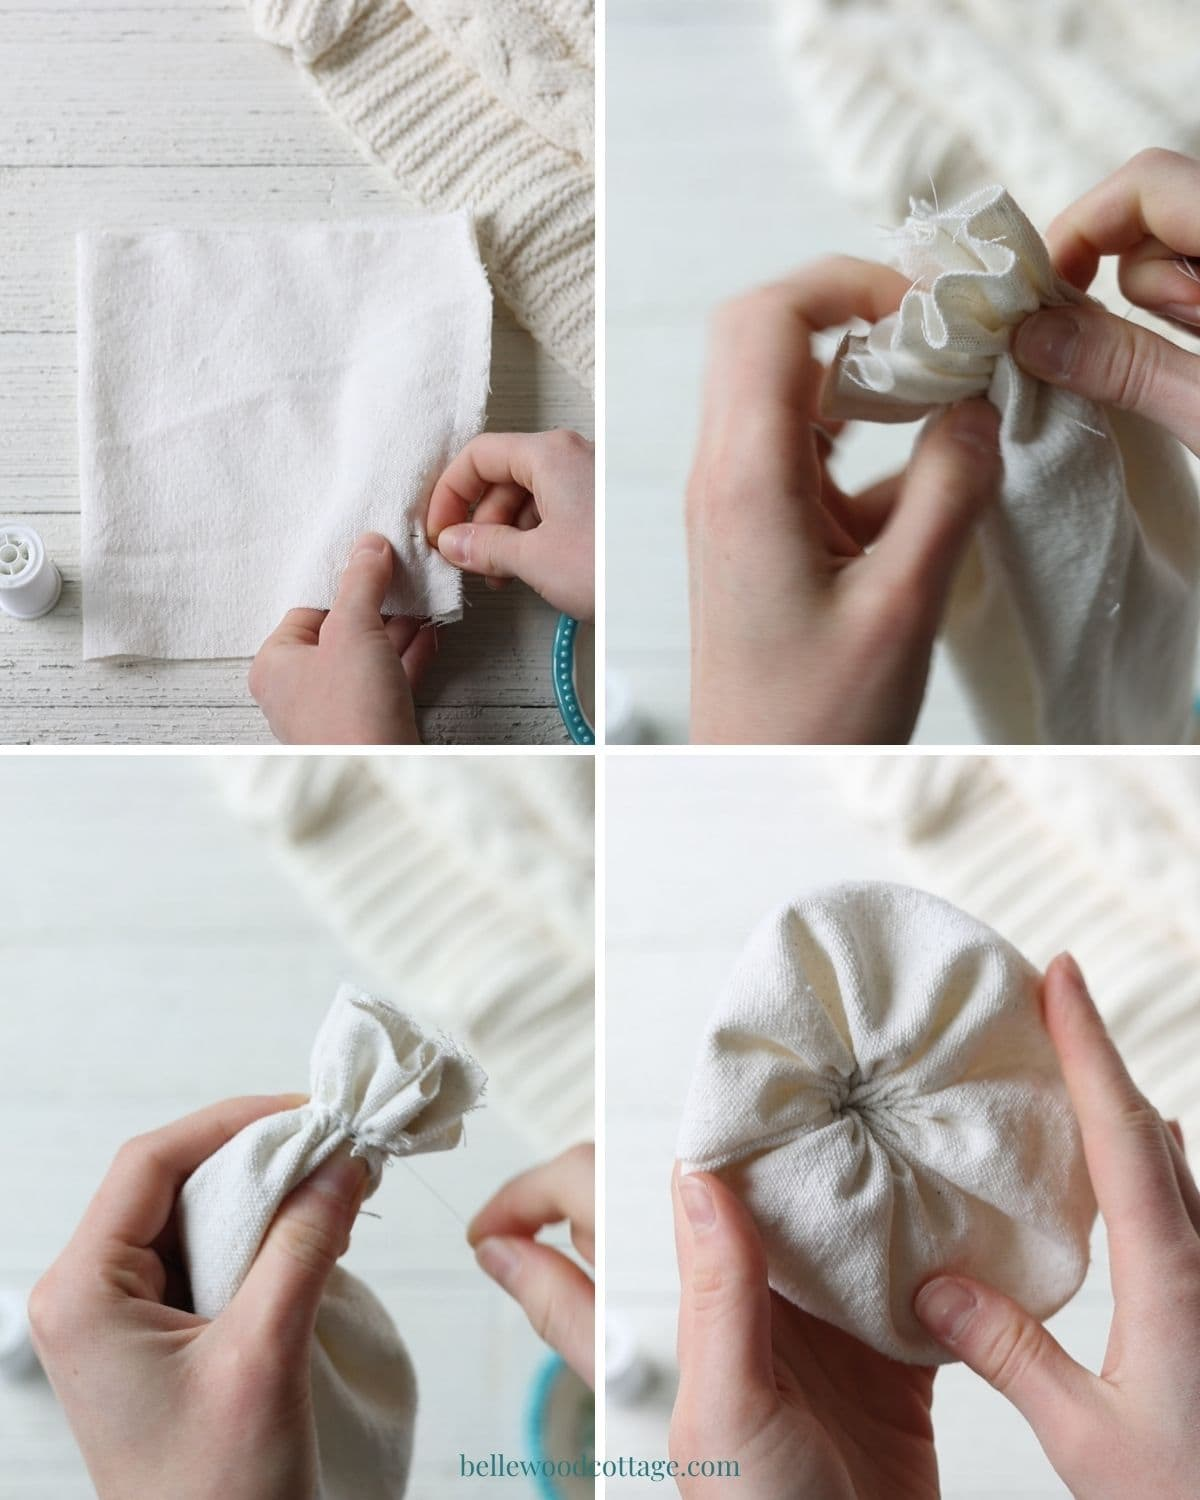 Step by step how to make drop cloth pumpkins - gathering the fabric.